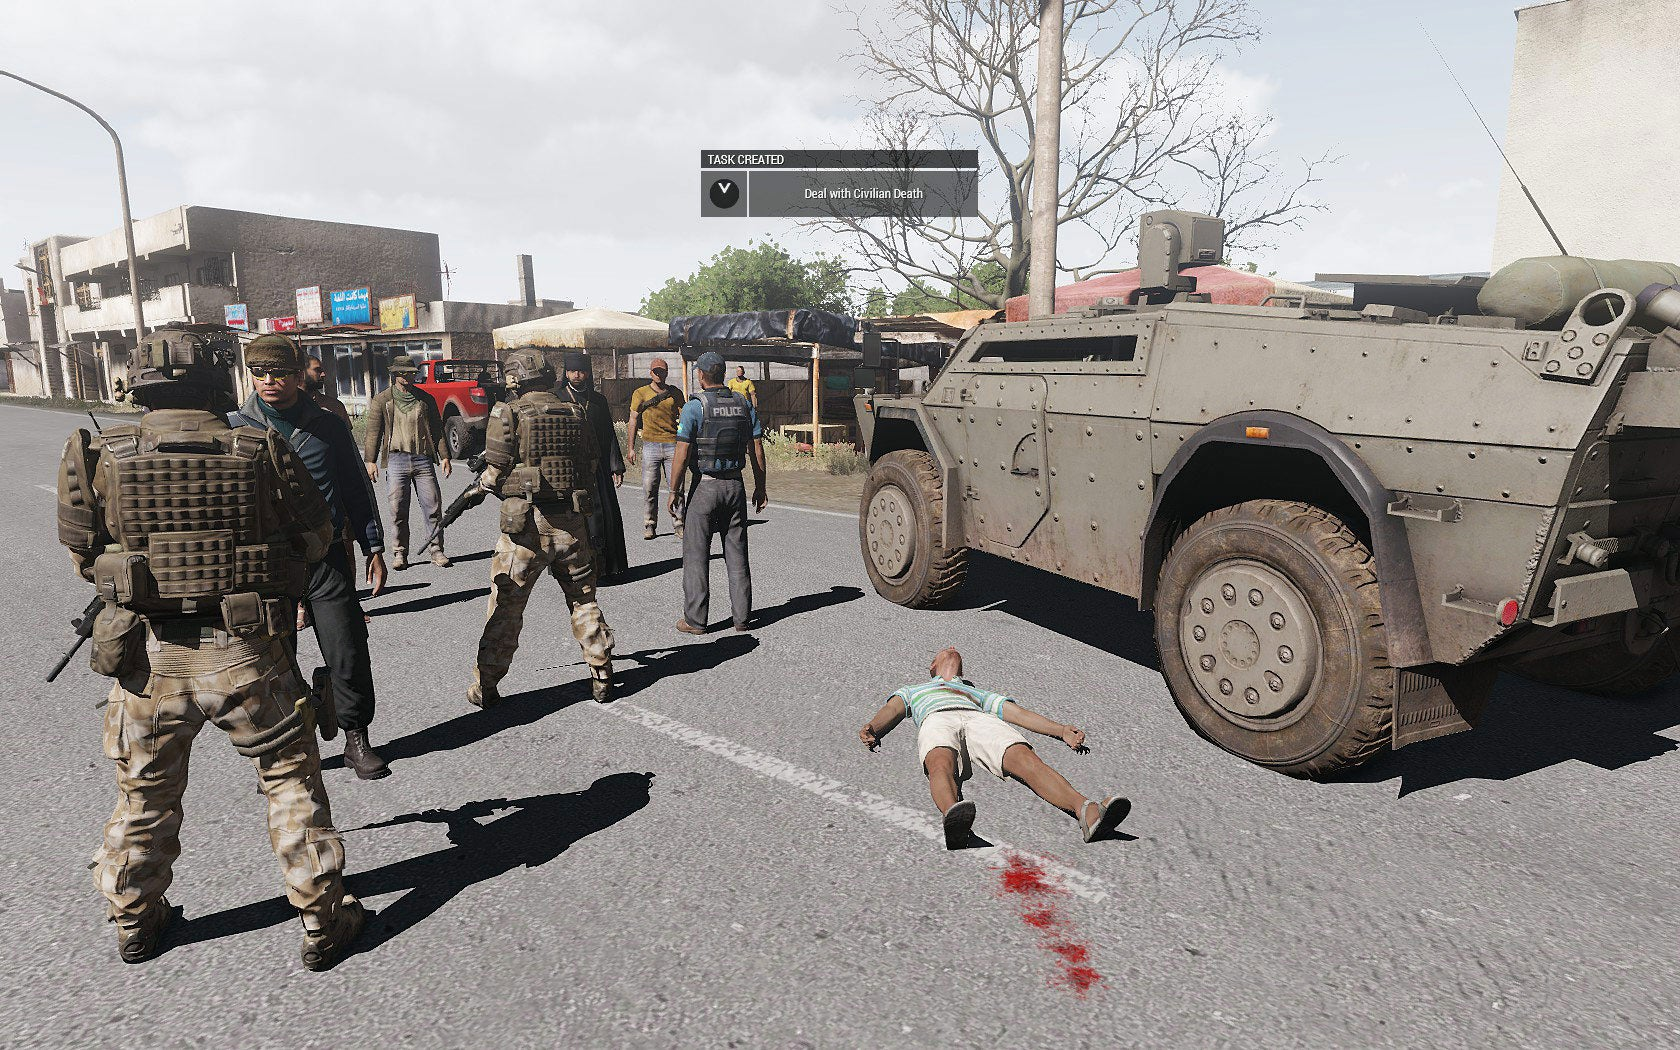 Military Shooter Mod Introduces Civilian Deaths And Cover-Ups